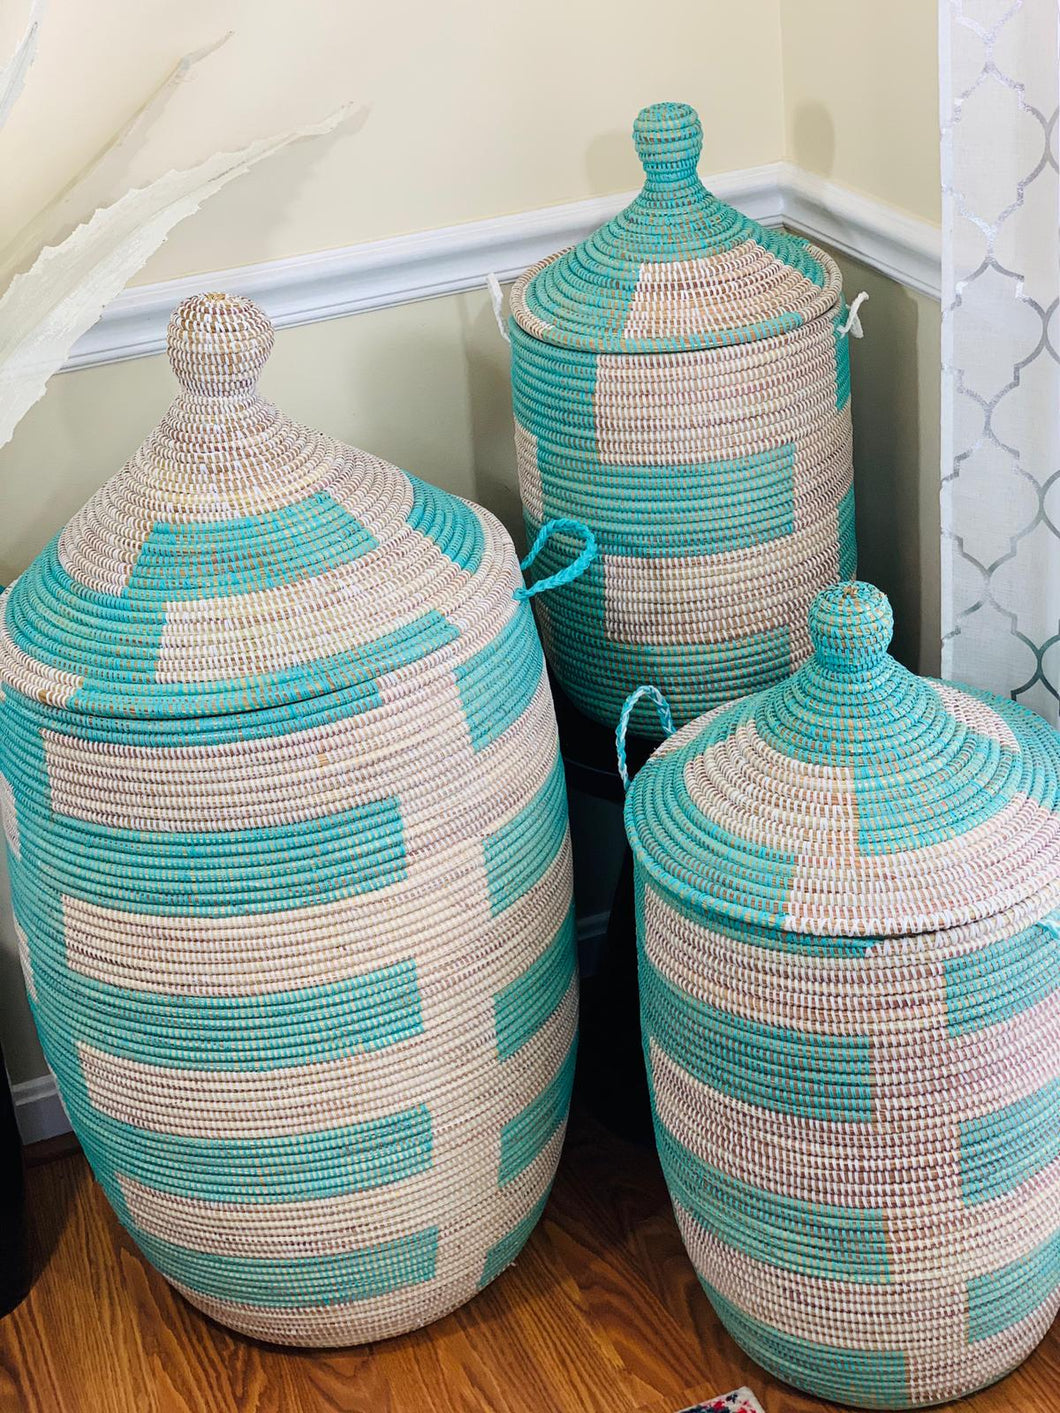 Teal and White Storage Basket - Yandey